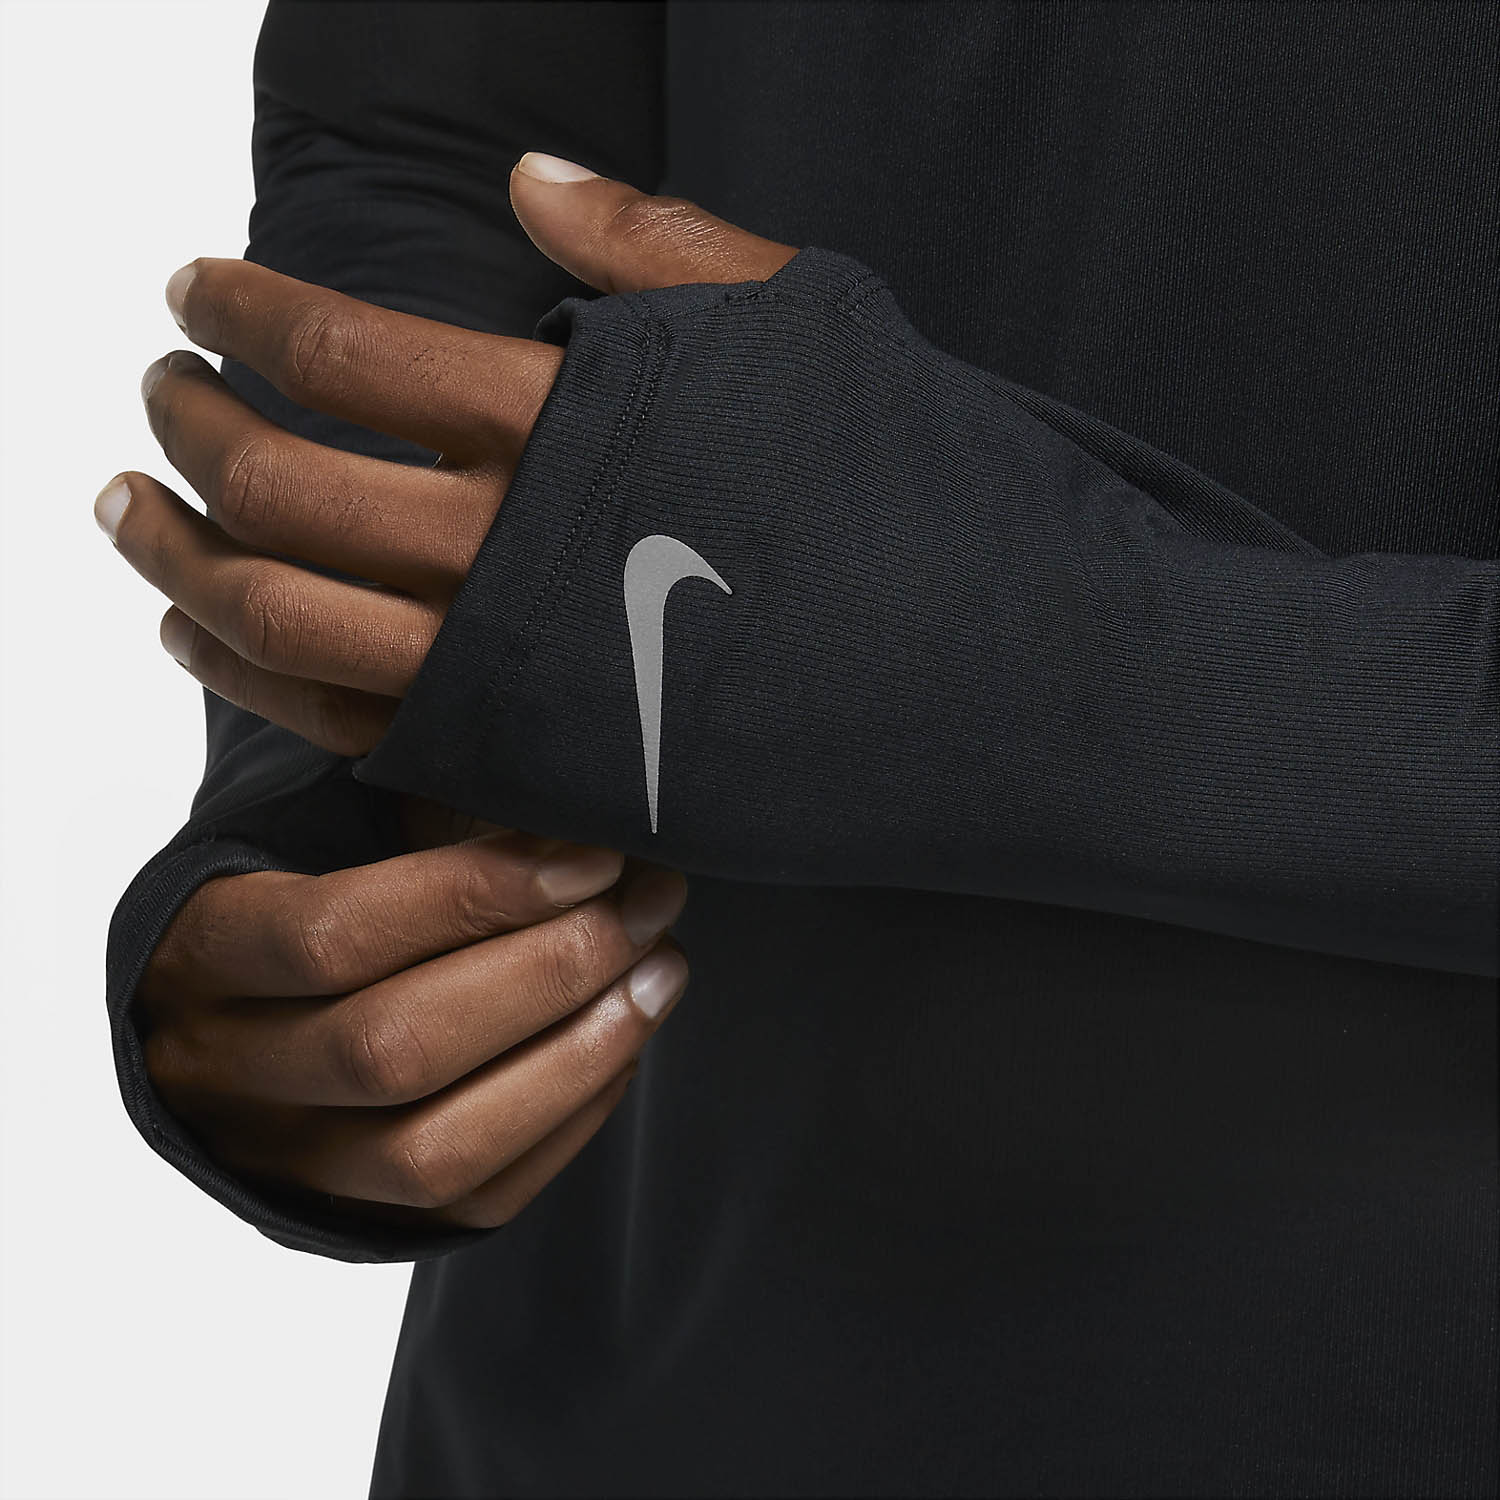 Nike Element Run Division Shirt - Black/Reflective Silver